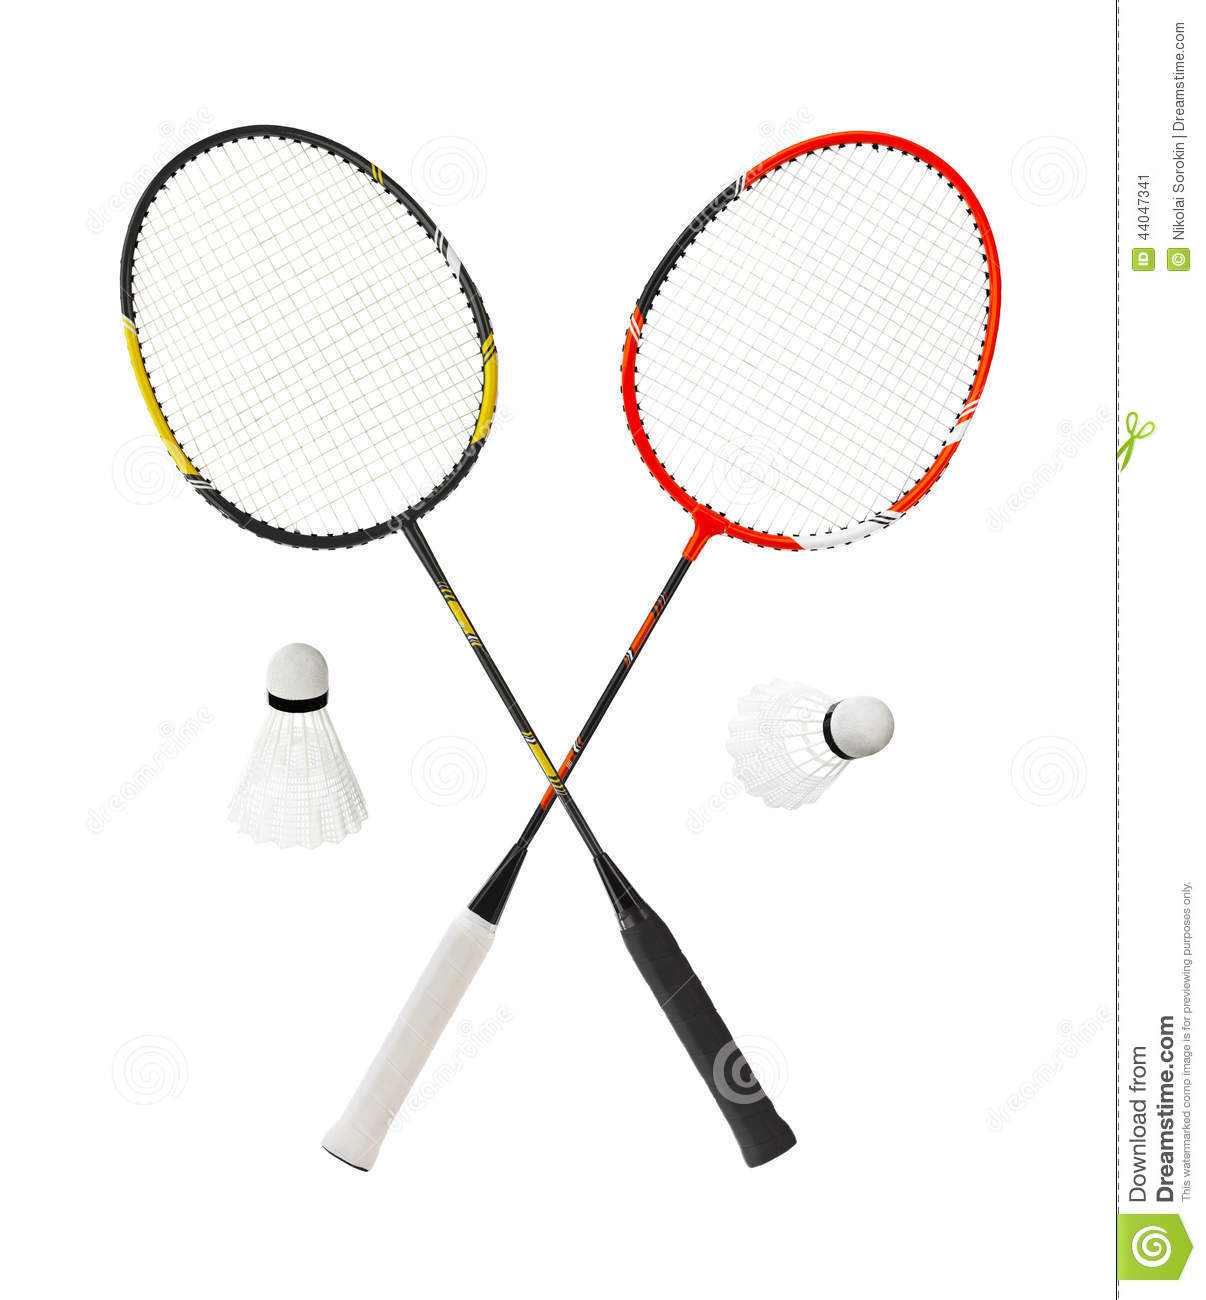 Badminton Racket Stock Image Image Of Equipment